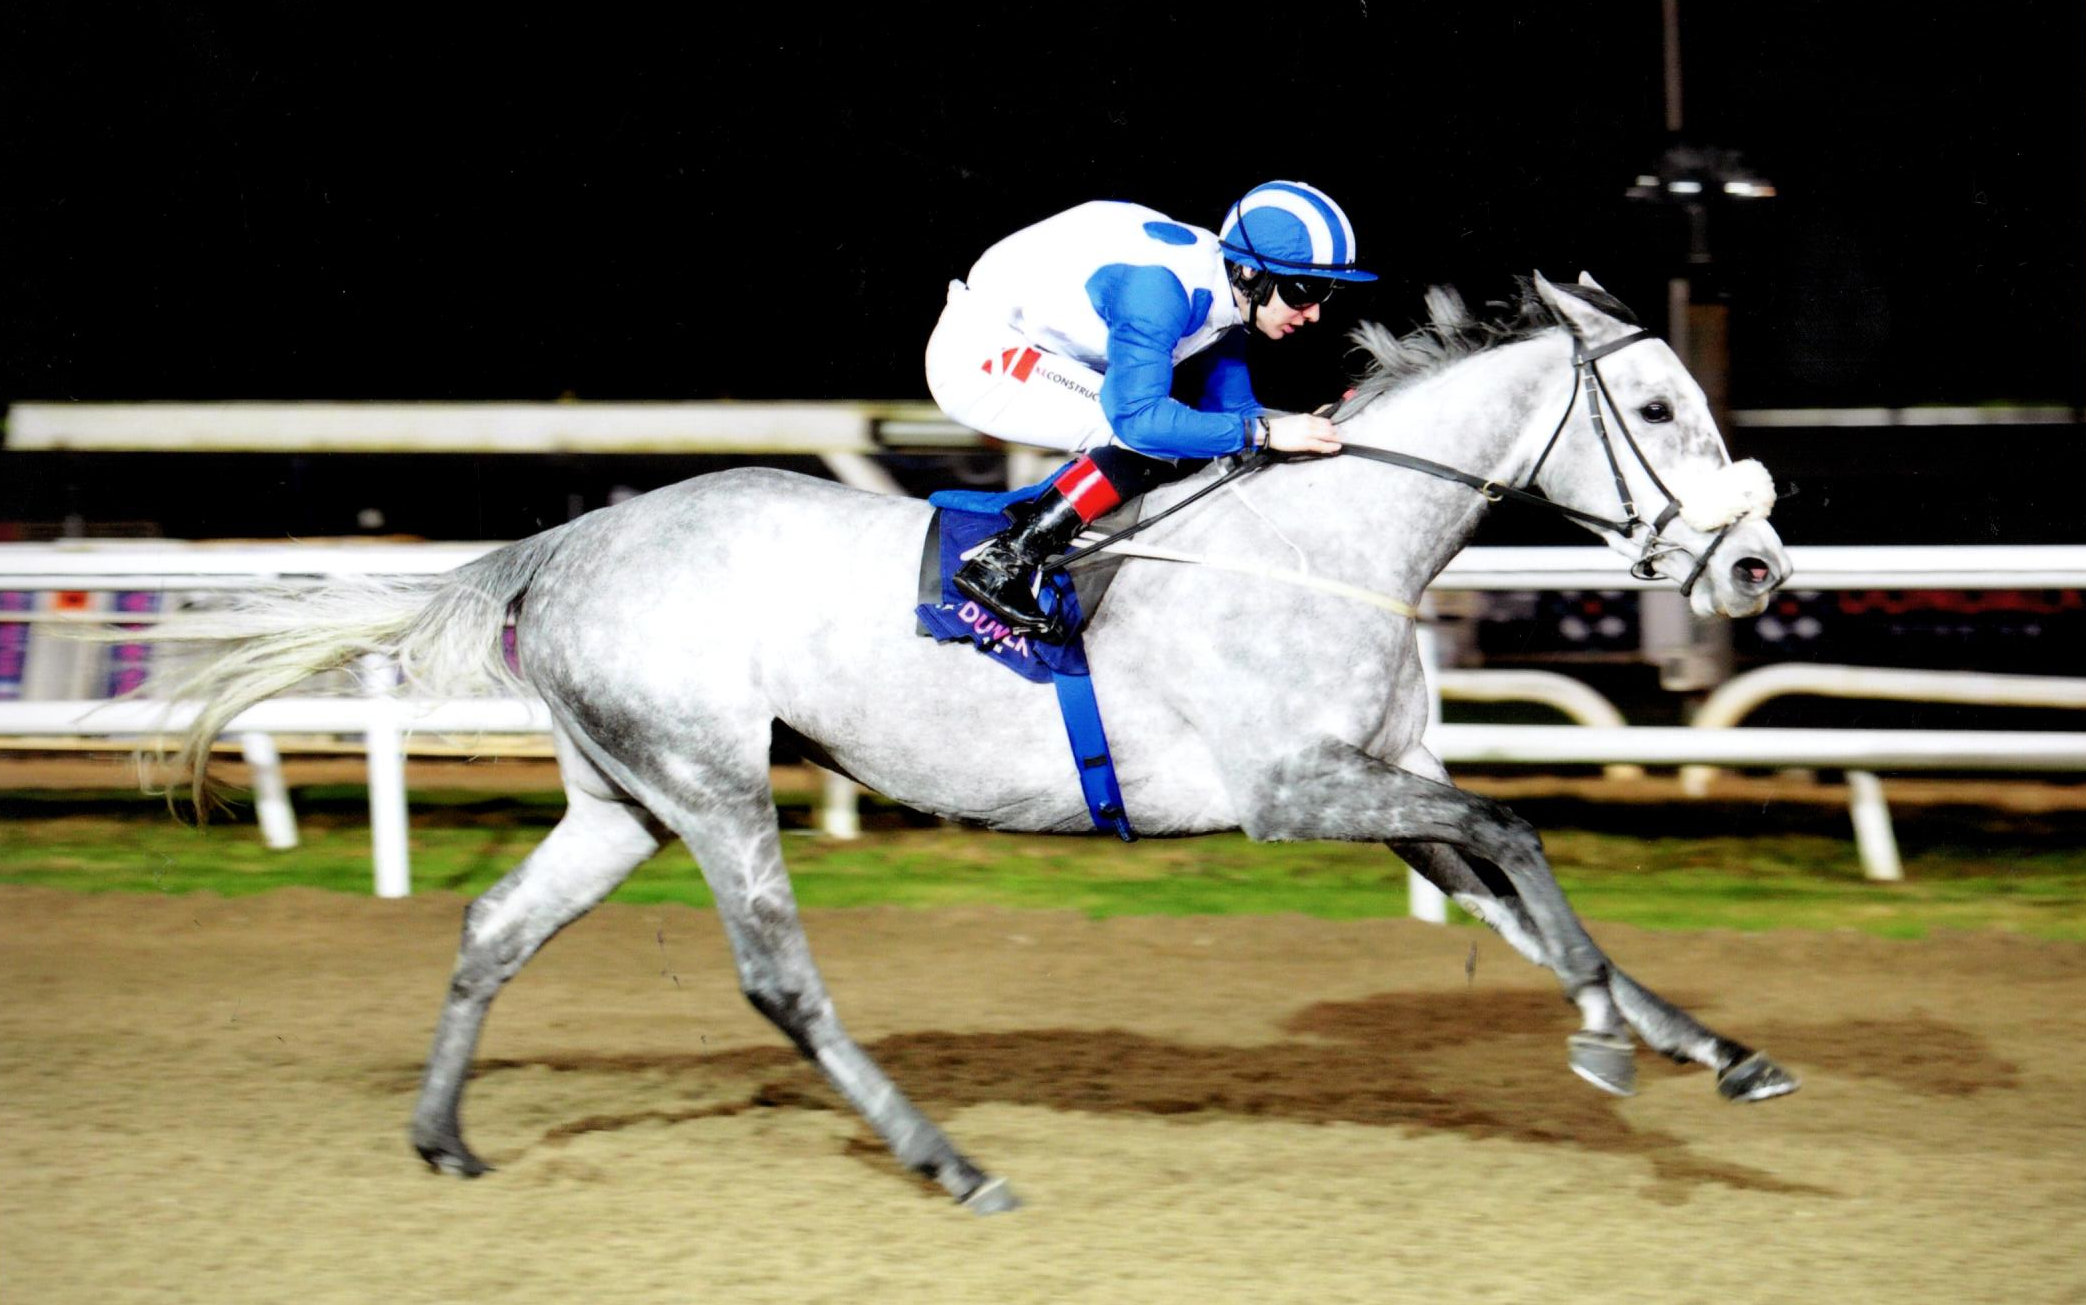 ELA KATRINA is an easy winner of the Irishinjuredjockeys.com M´dn (1m2f) at Dundalk, 10 Jan 2020.